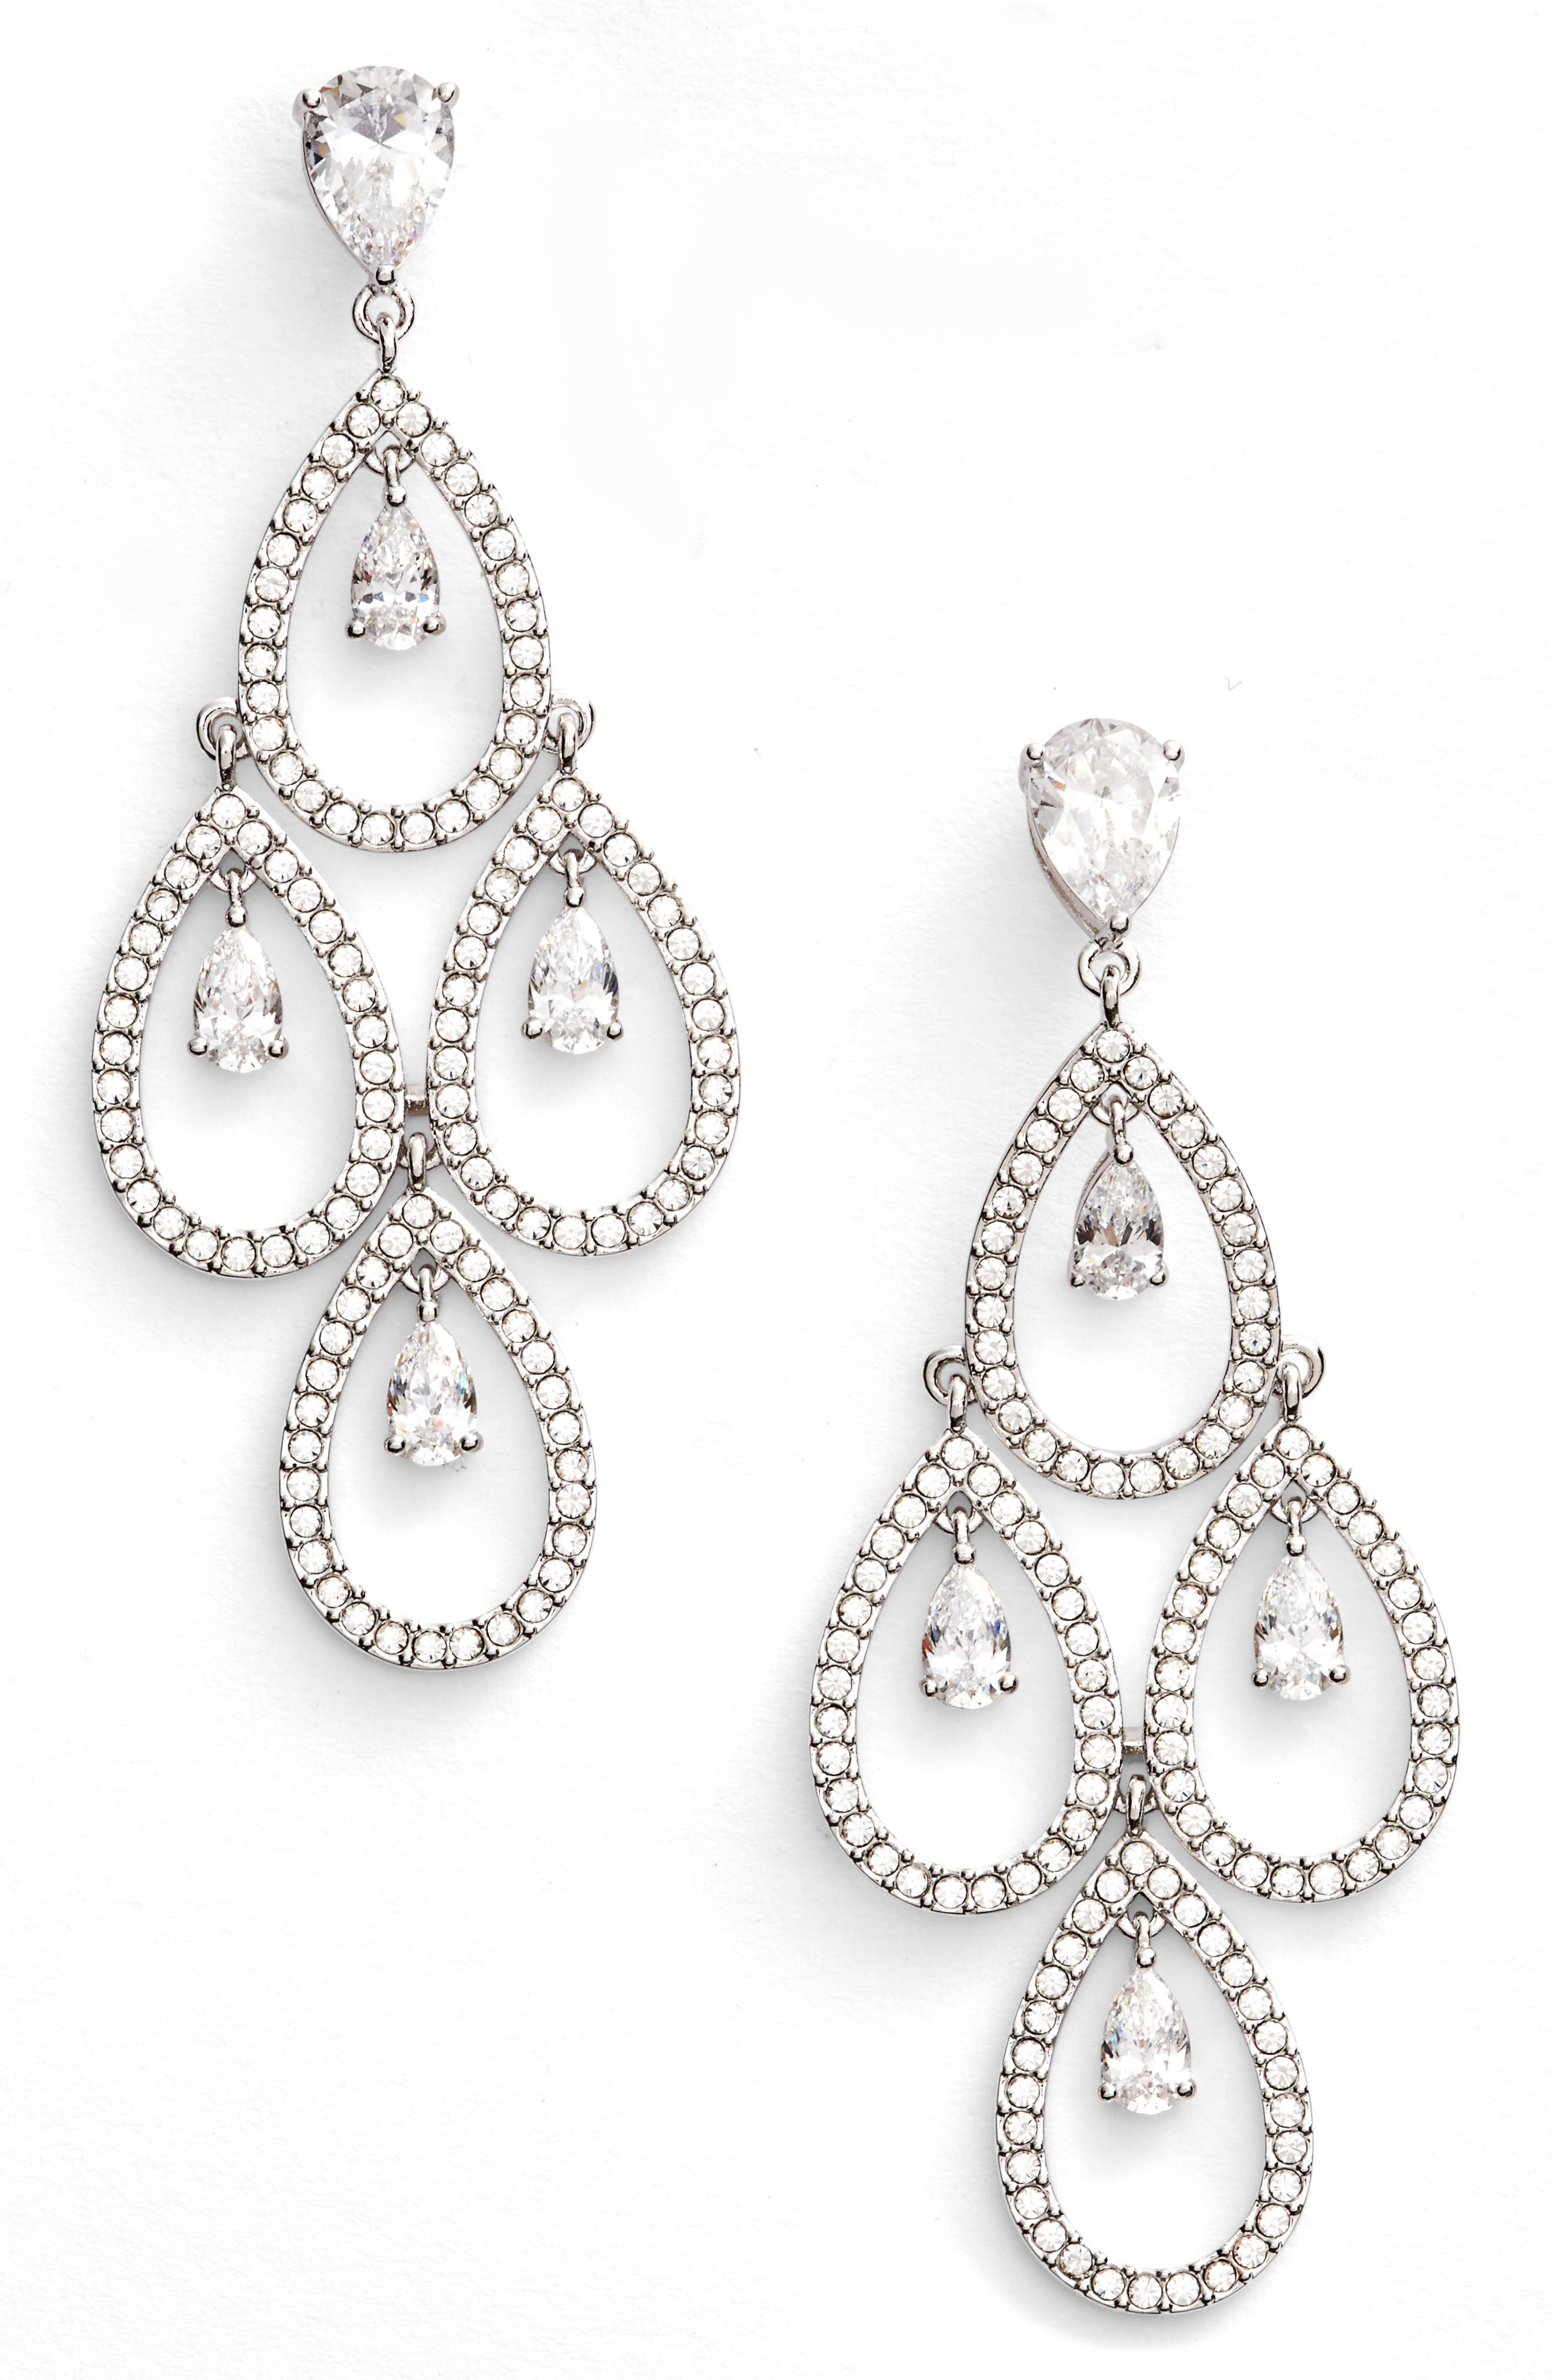 Crystal Chandelier Earrings,                             Main thumbnail 1, color,                             SILVER